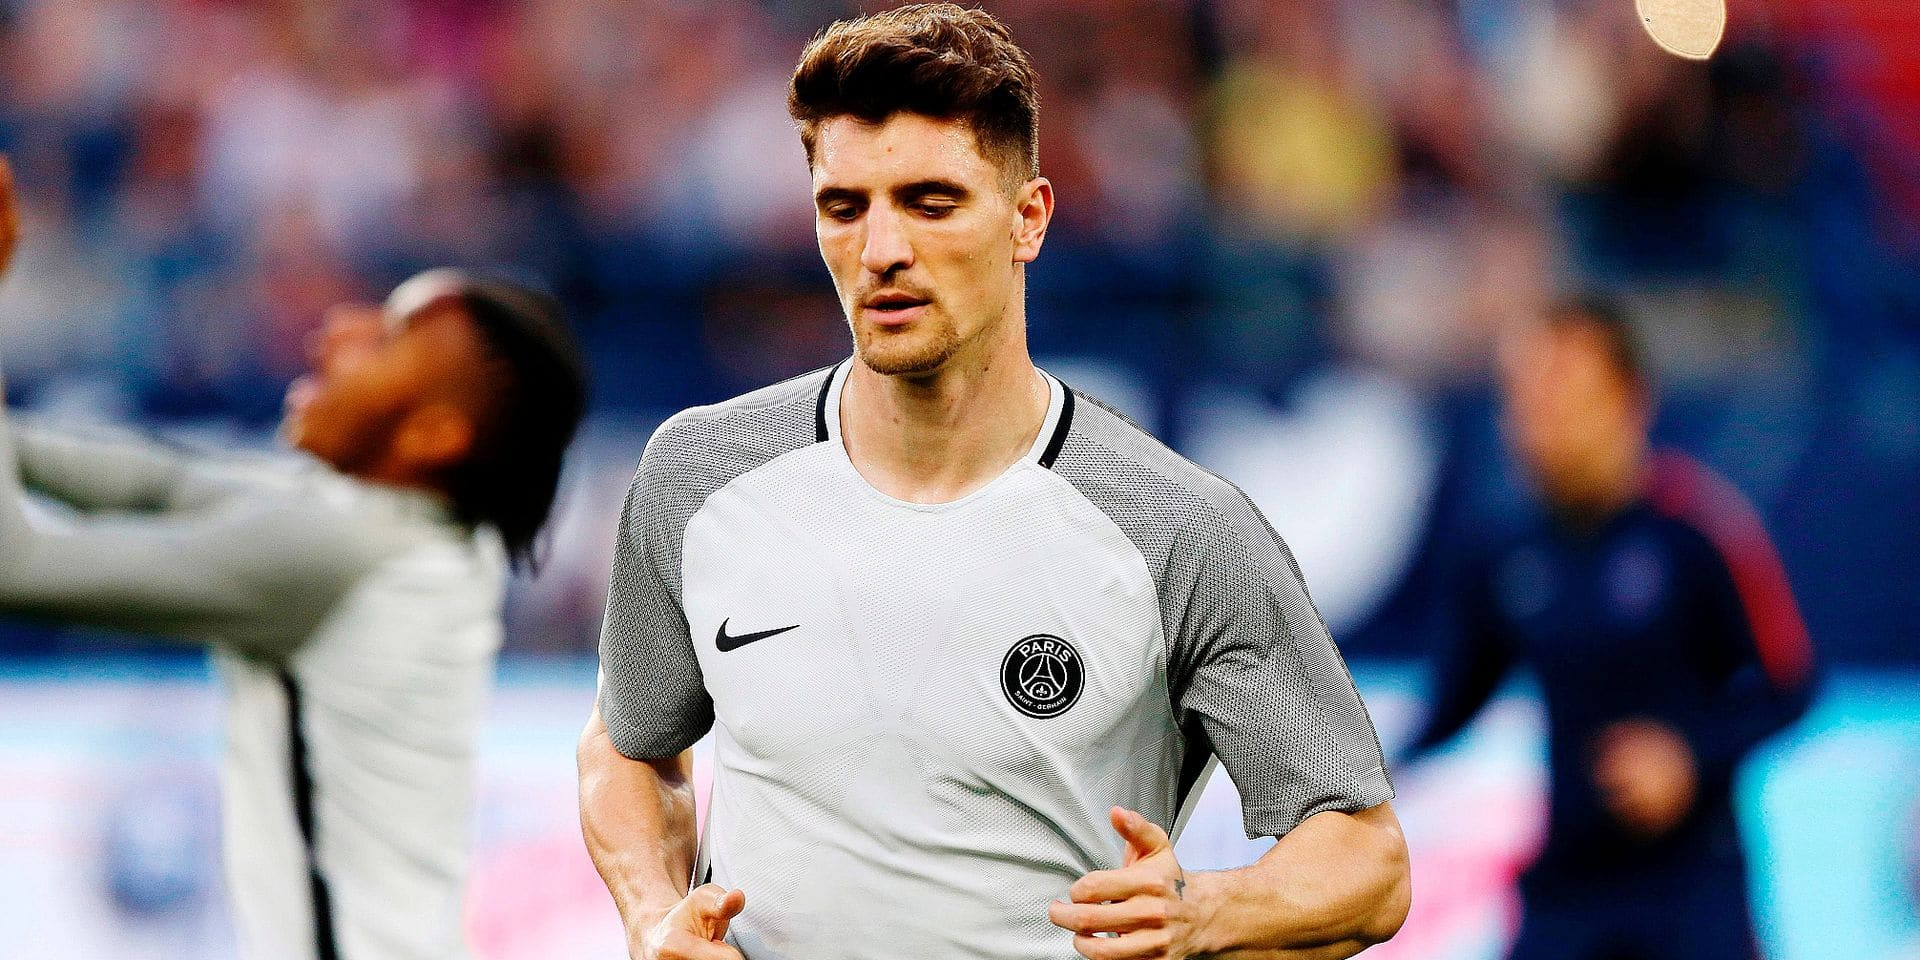 Paris Saint-Germain's Belgian defender Thomas Meunier warms up before the French cup semi-final match between Caen (SMC) and Paris Saint-Germain (PSG) on April 18, 2018 at the Michel-d'Ornano stadium in Caen, northwestern France. / AFP PHOTO / CHARLY TRIBALLEAU